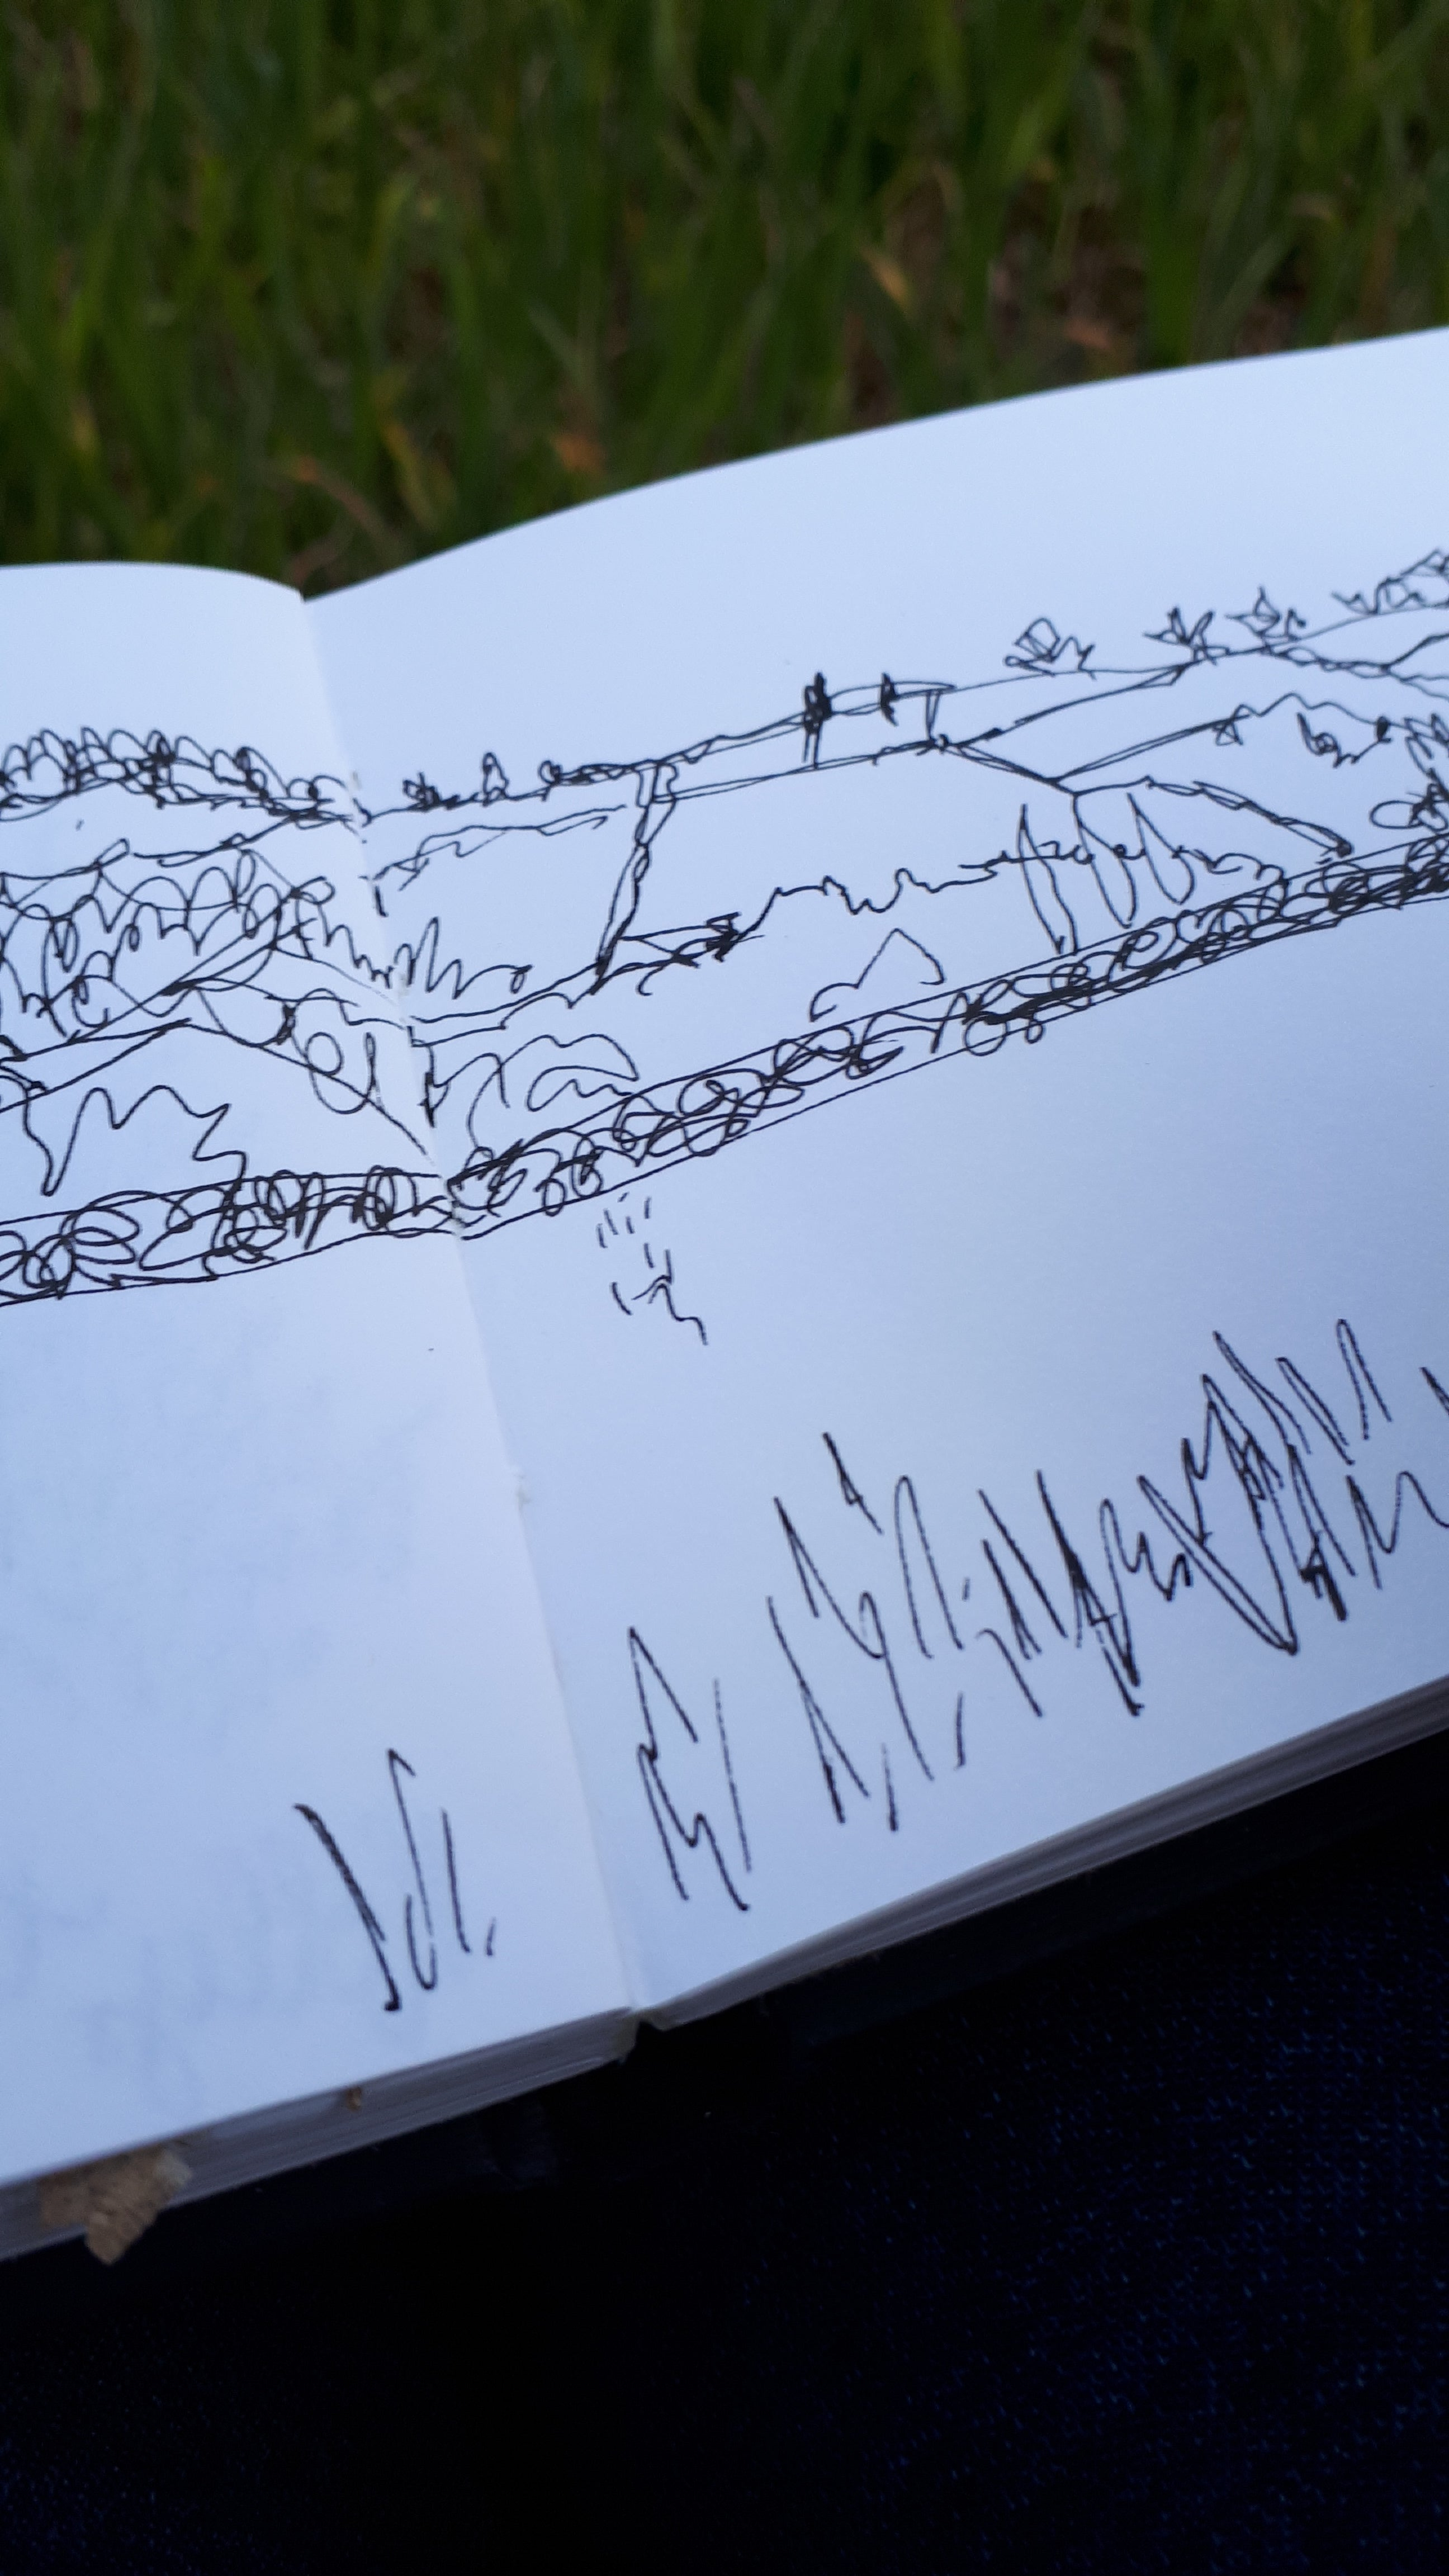 Field sketching by Alice Draws the Line, sketchbook study